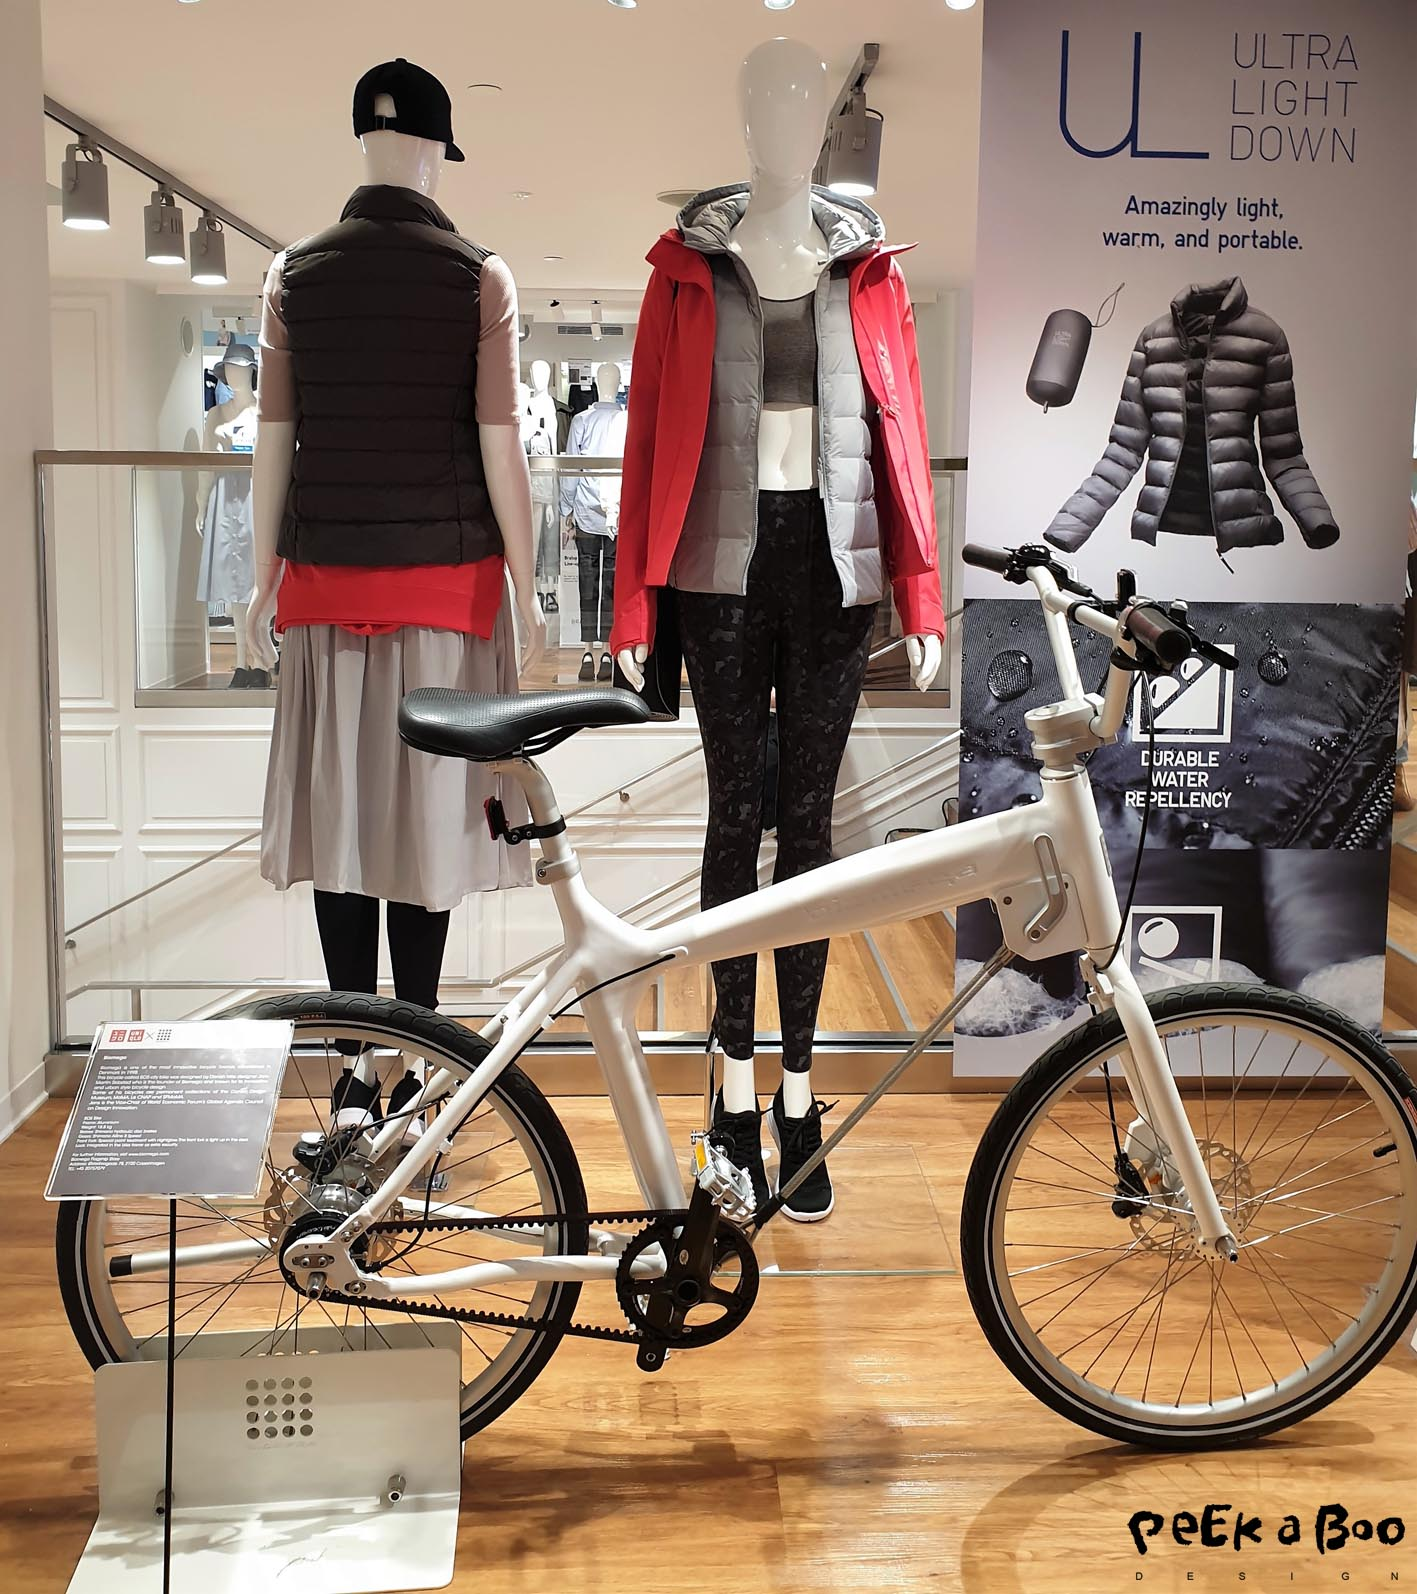 They have made some co-operations with danish brands such as Biomega bikes. Because bikes are such an integrated part of our urban lifestyle.